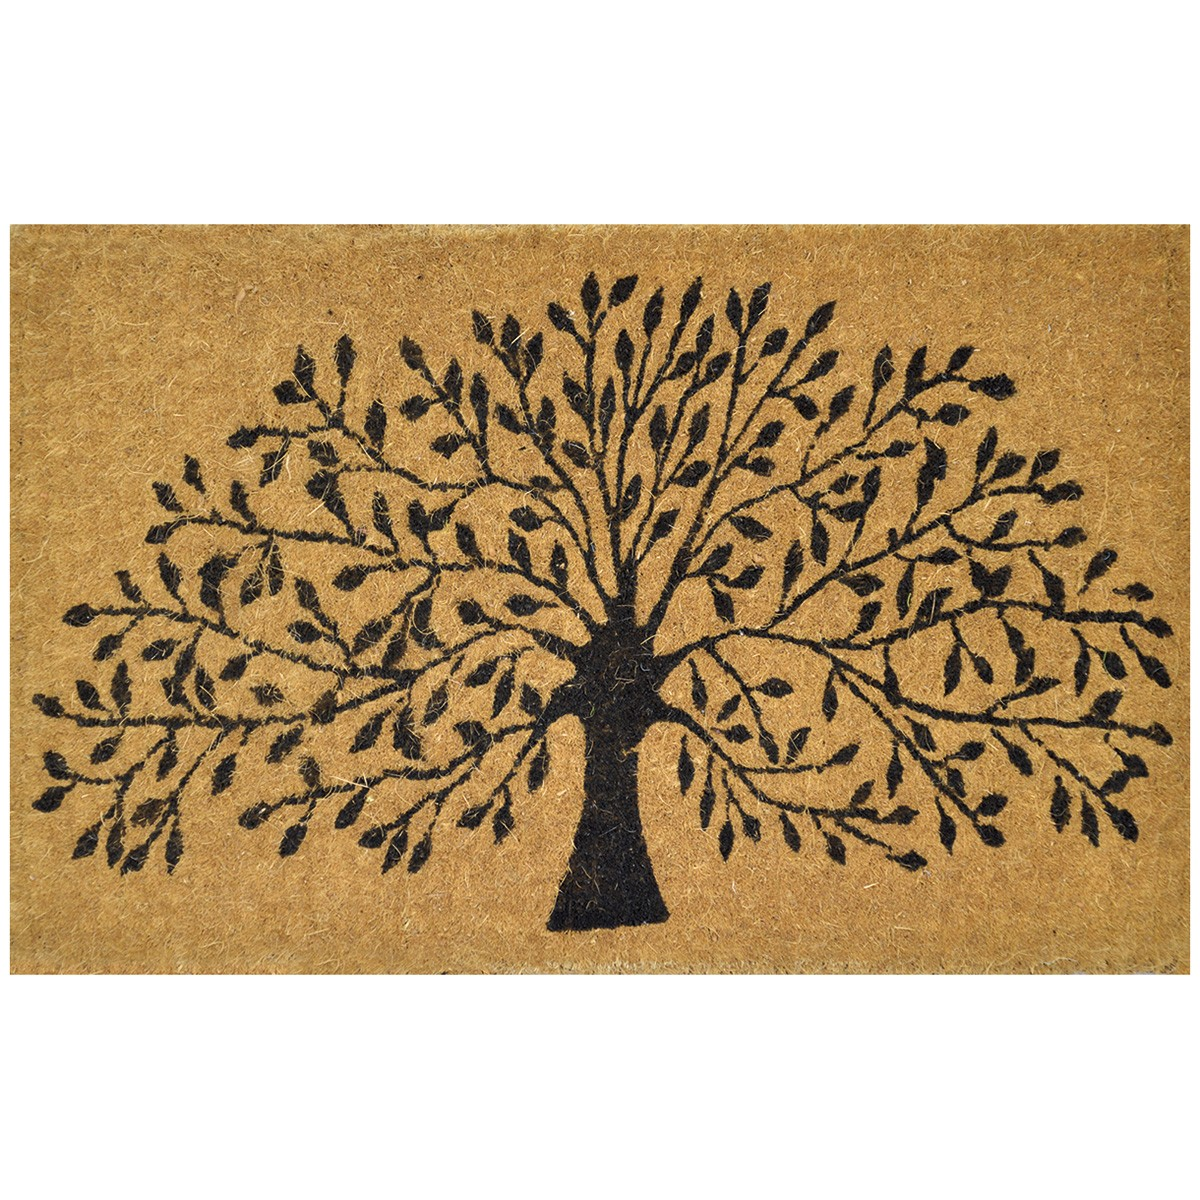 Tree of Life Premium Handwoven Coir Doormat, 80x50cm